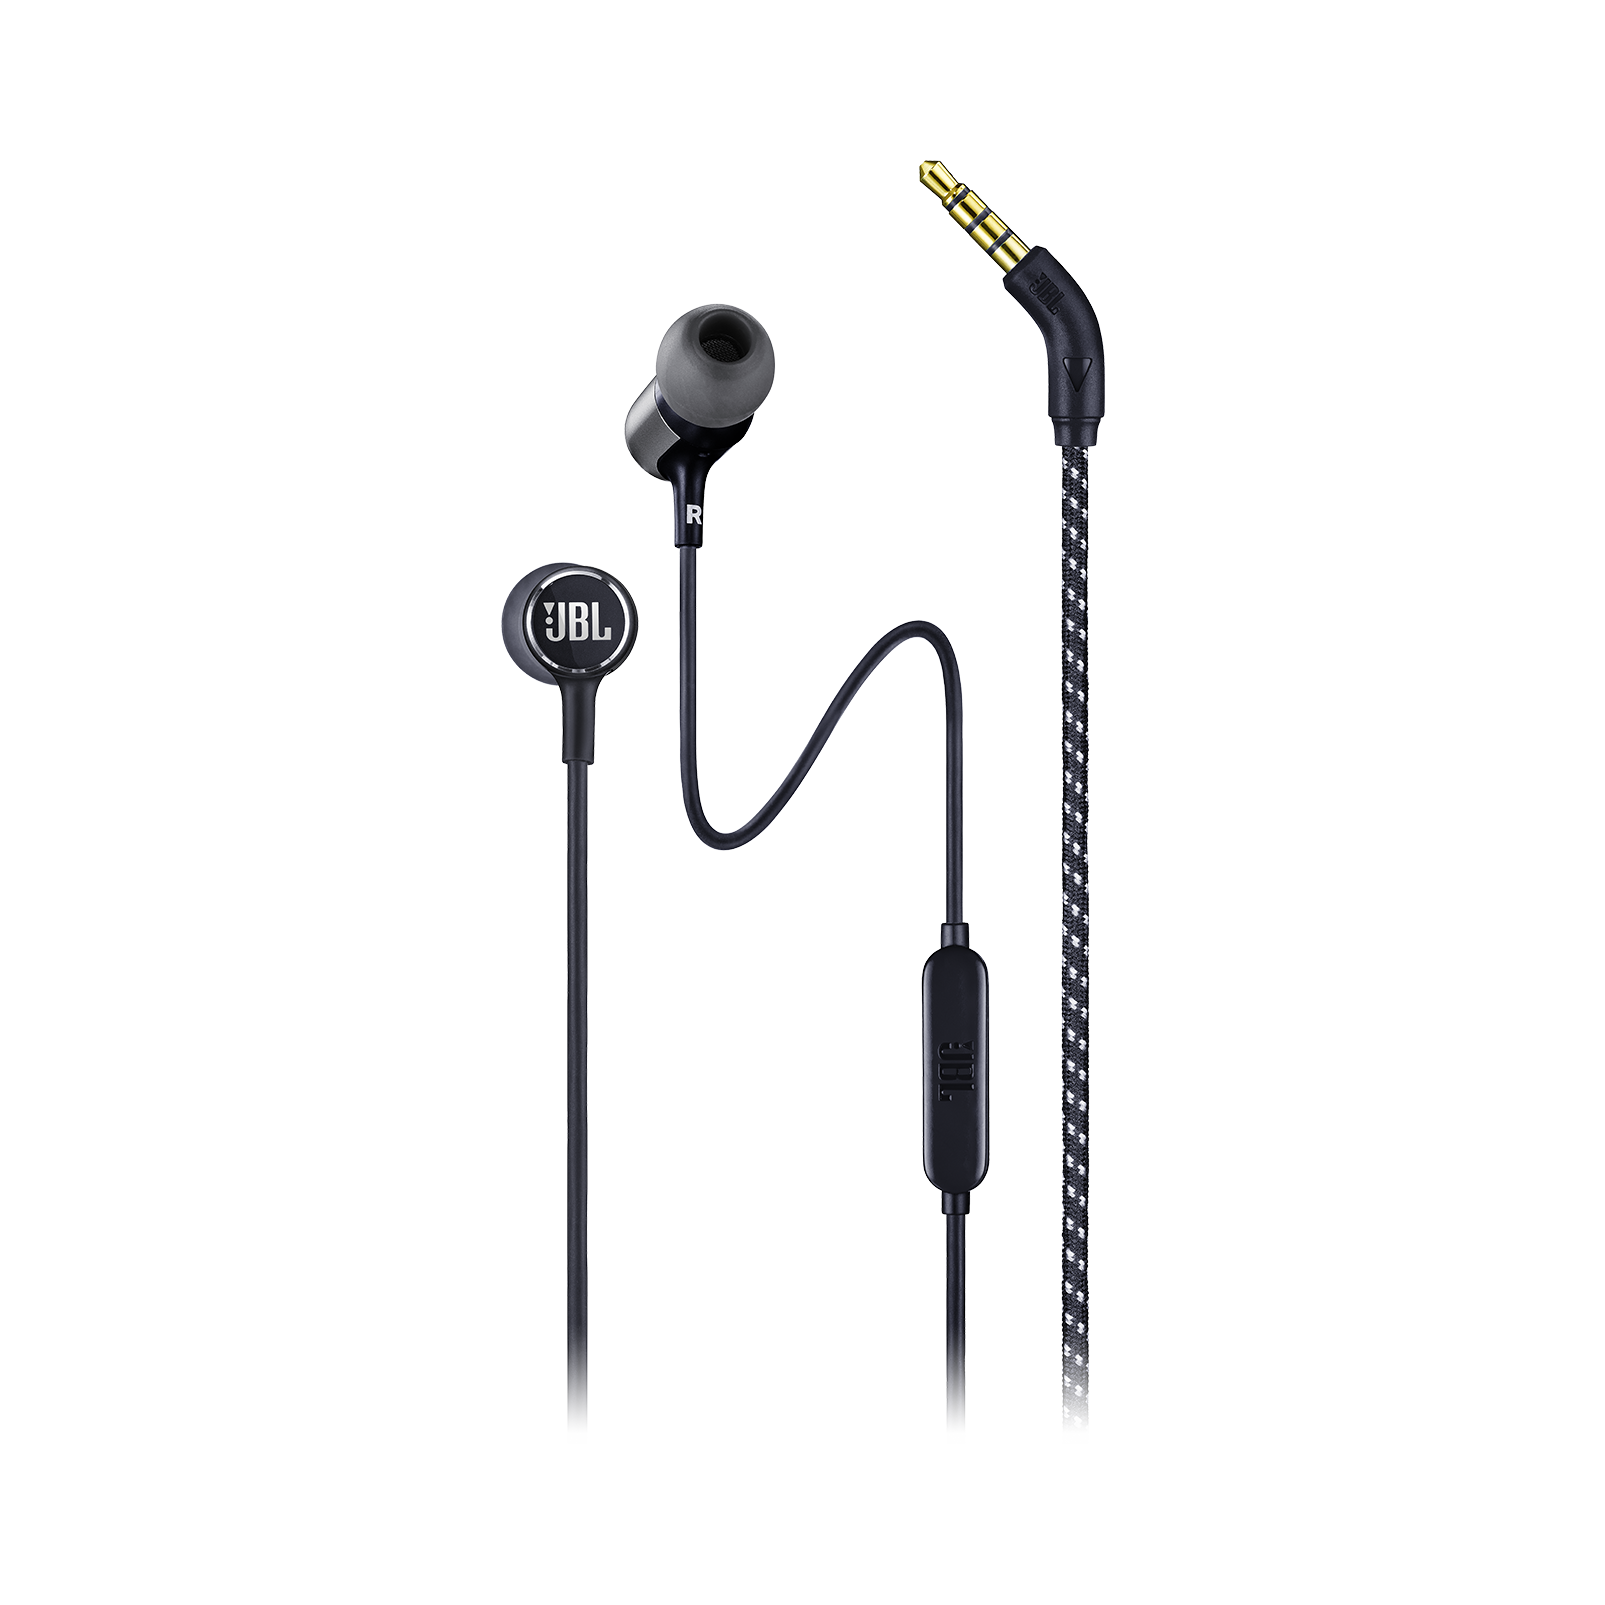 JBL Live 100 In-Ear Headphones with Microphone $9.95